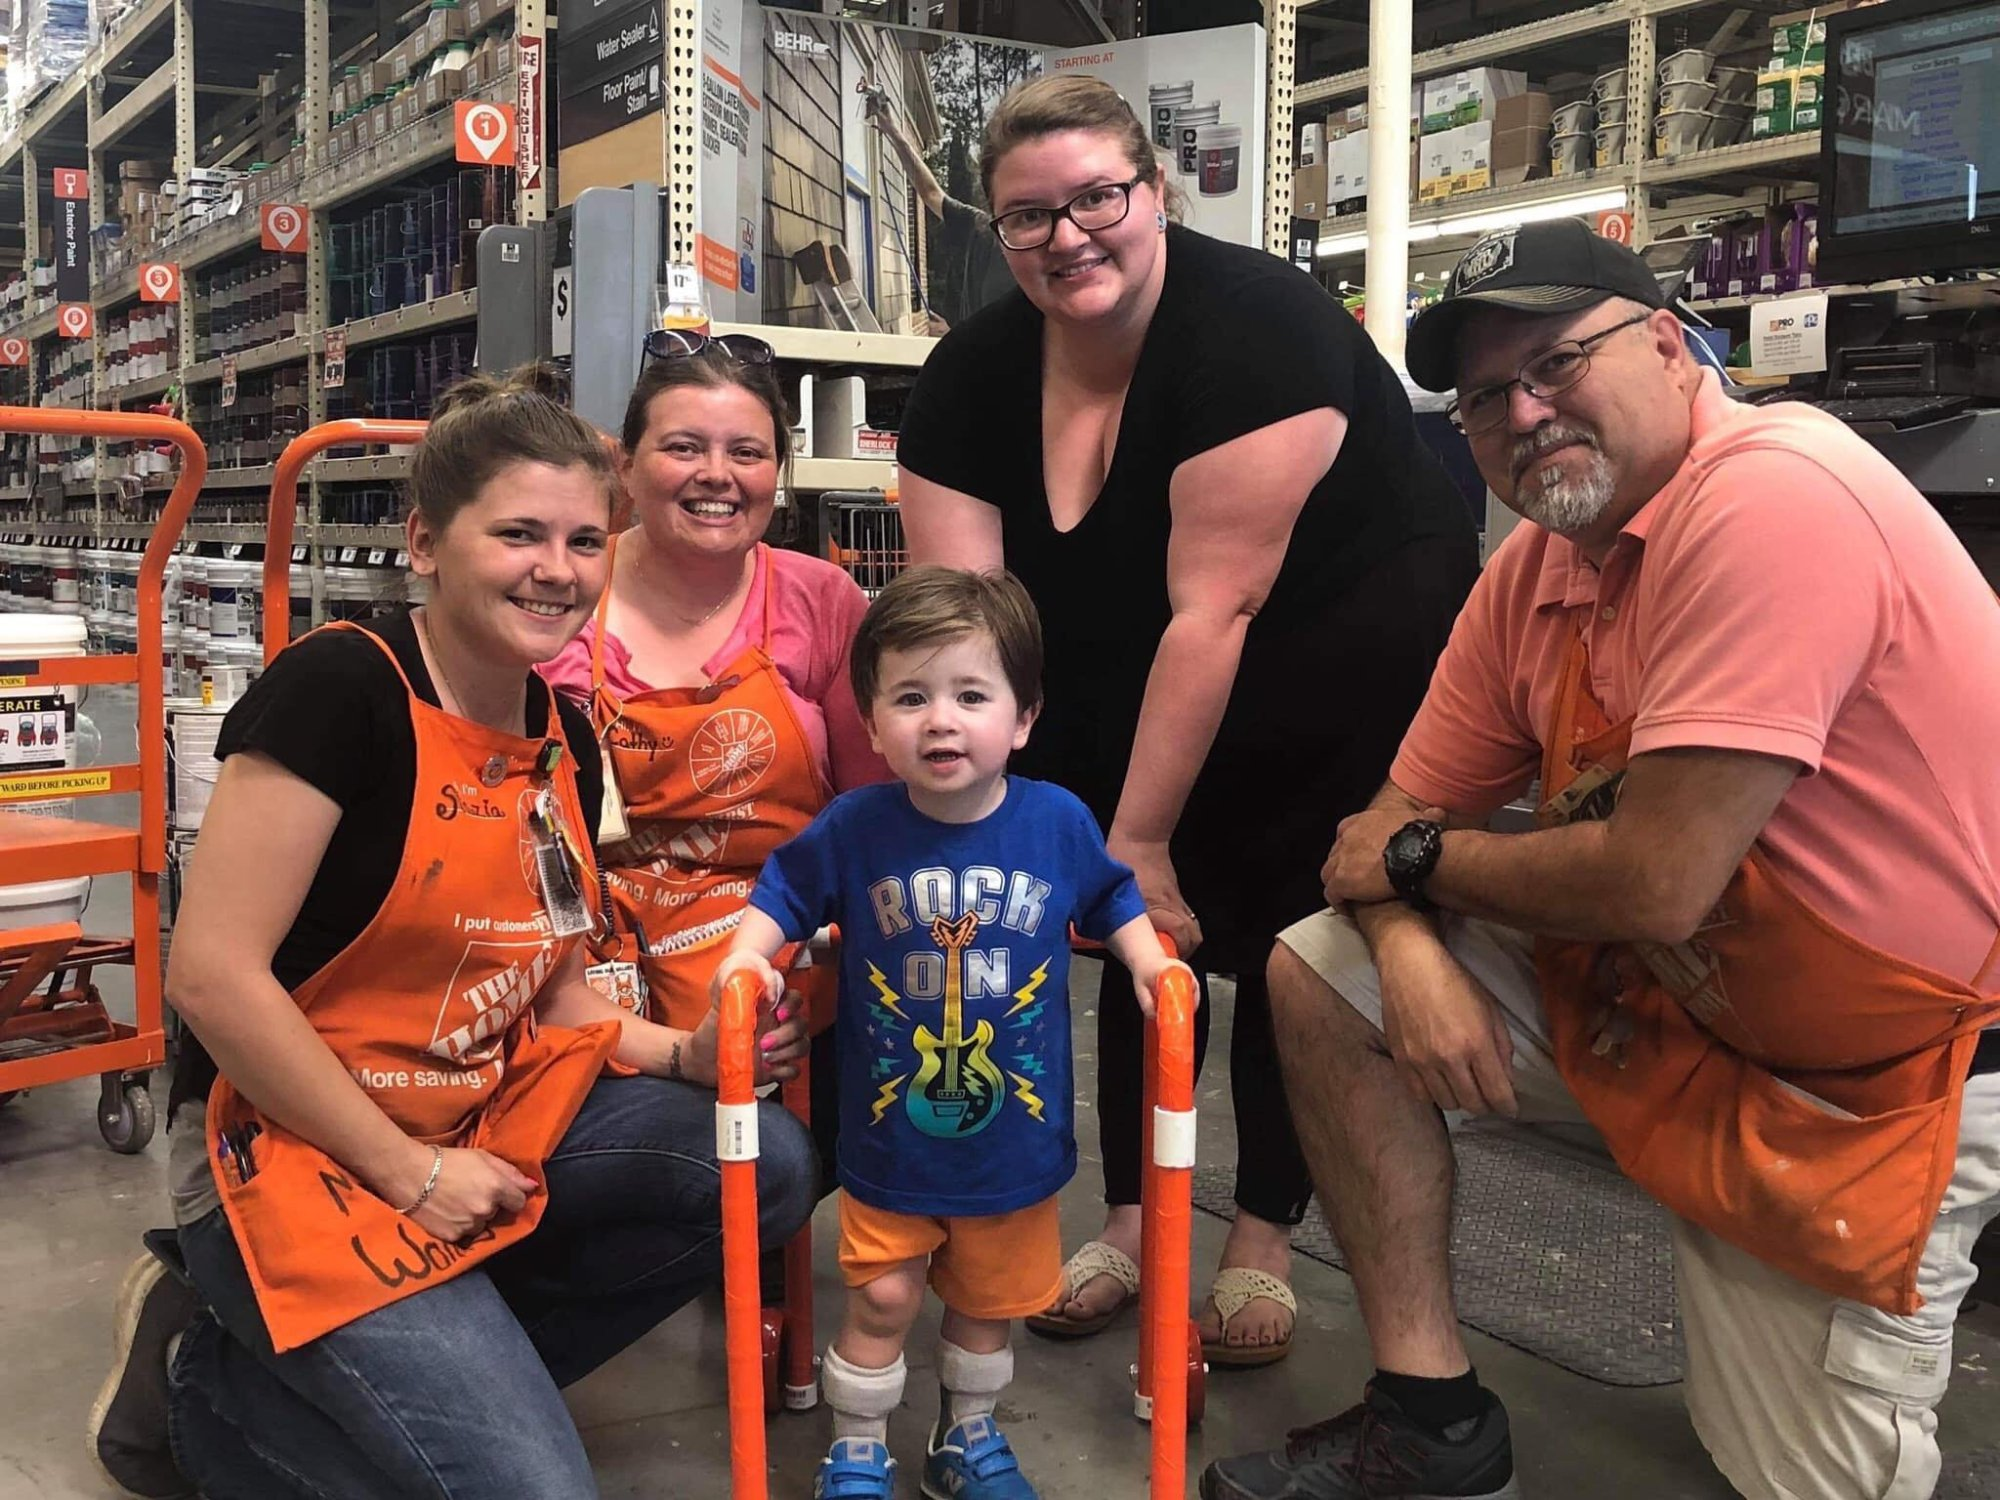 Home Depot employees helped build a walker for a family who came into the store looking for parts